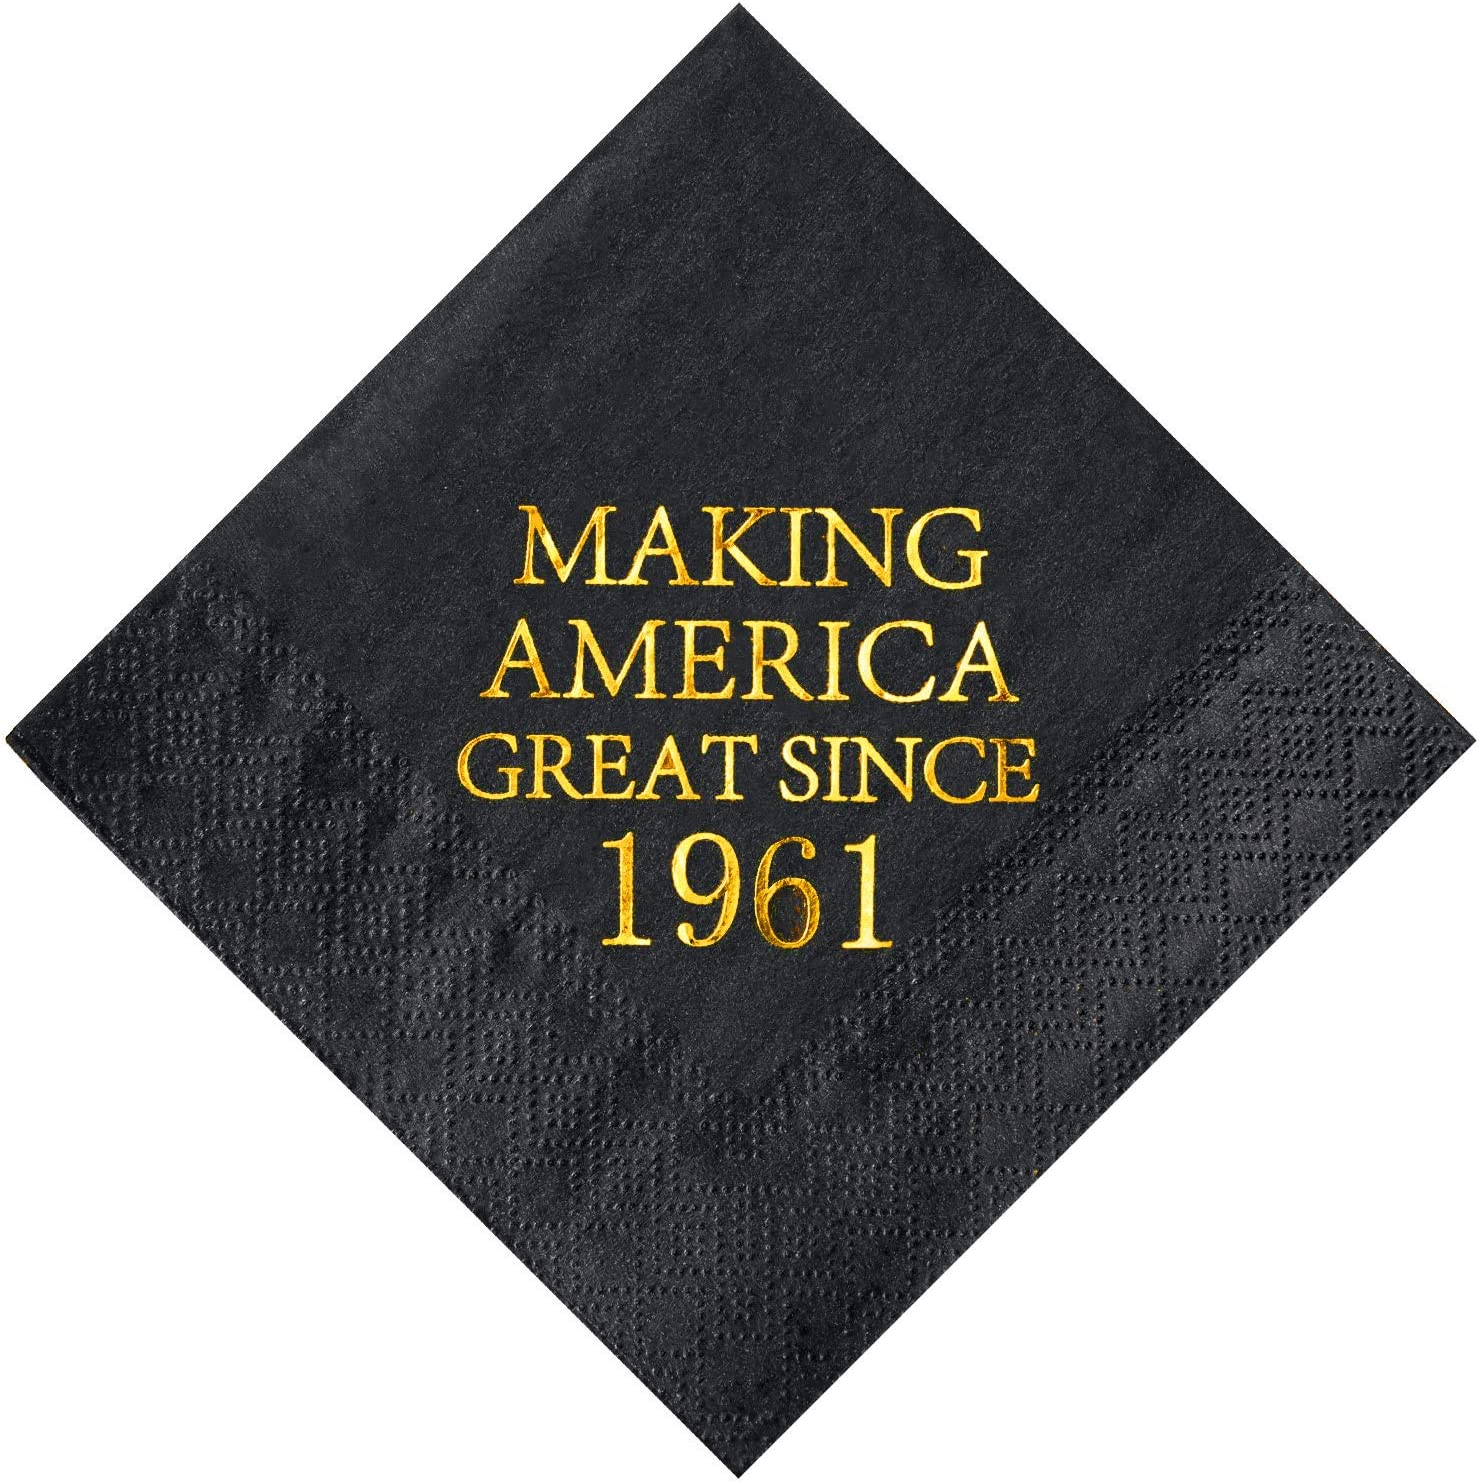 Crisky 60th Birthday Disposabel Napkins Black and Gold Dessert Beverage Cocktail Cake Napkins 60th Birthday Decoration Party Supplies for Man Making Great Since 1961, 50 Pack 4.9